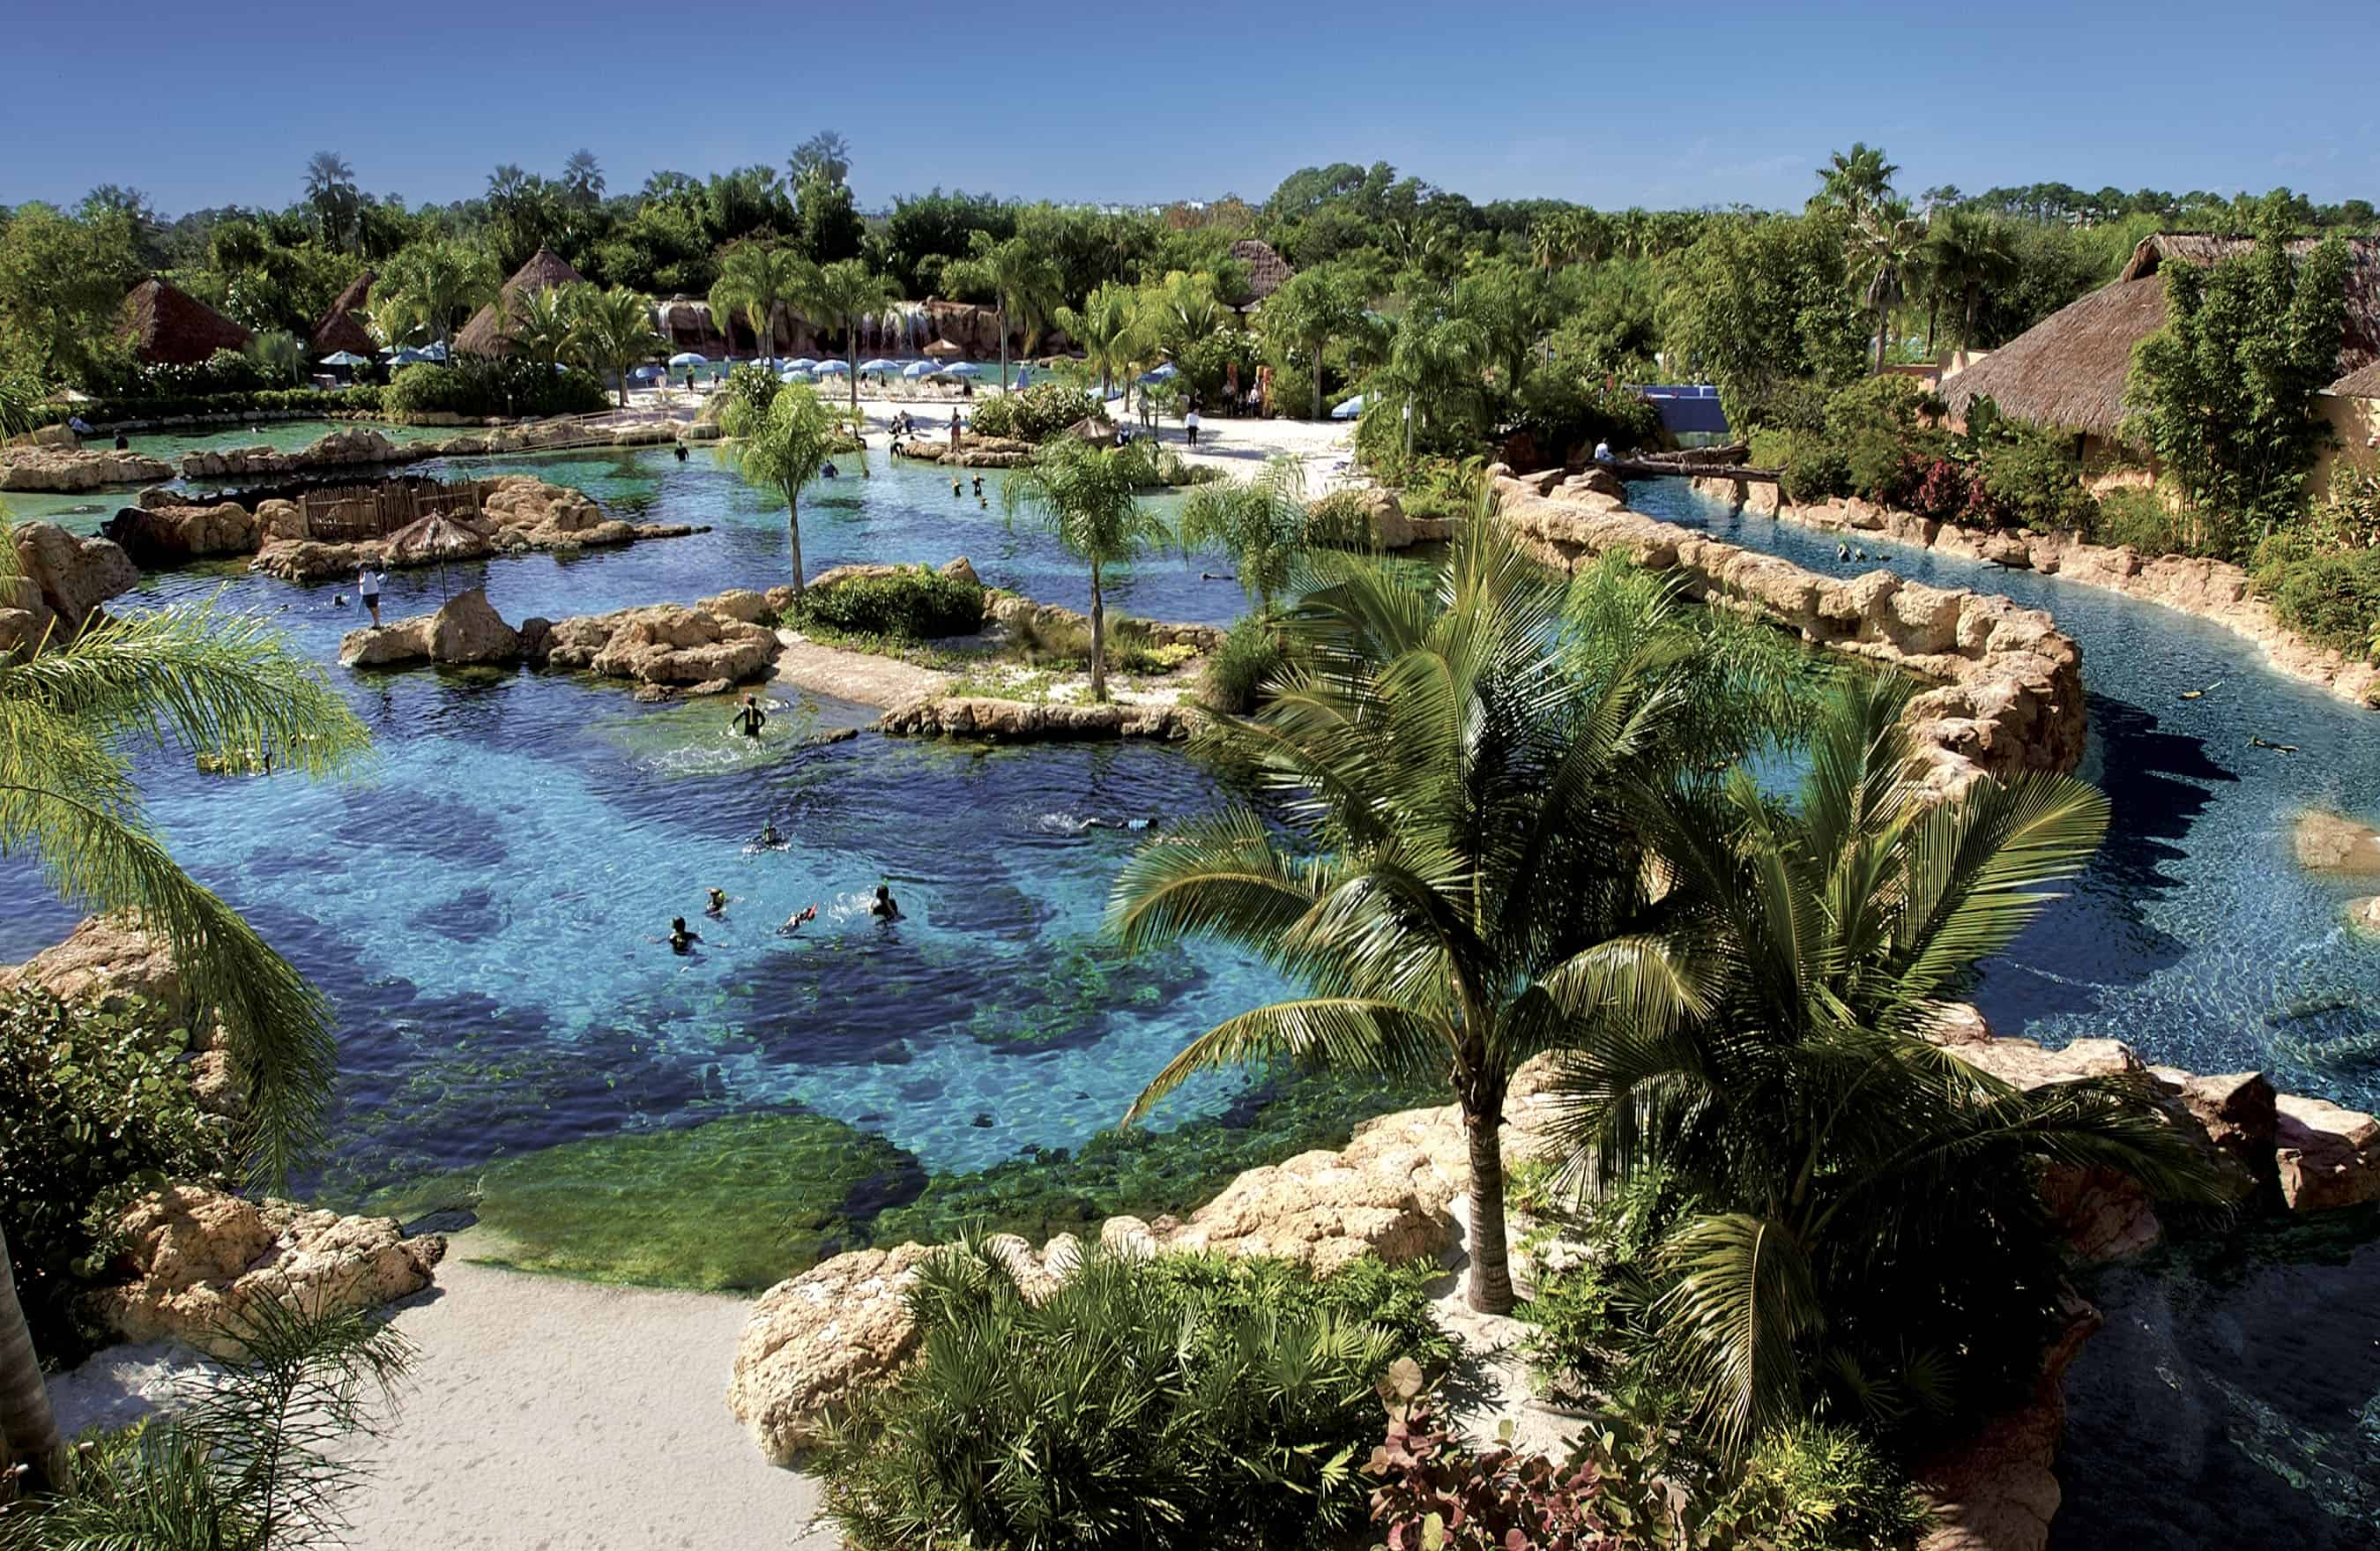 10 Reasons You MUST Visit SeaWorld's Discovery Cove